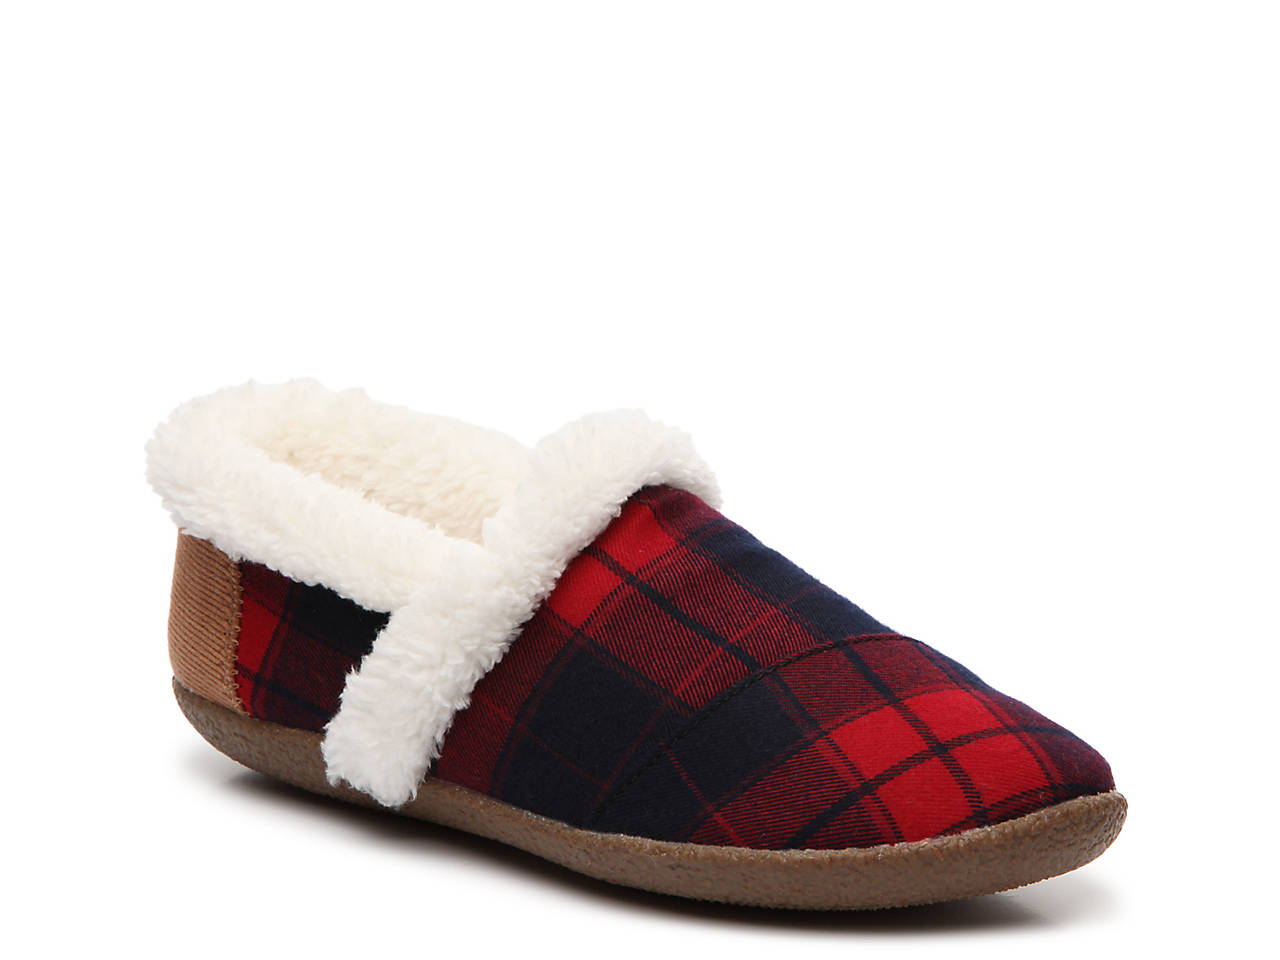 4982acf49b1ebd TOMS House Slipper Women s Shoes